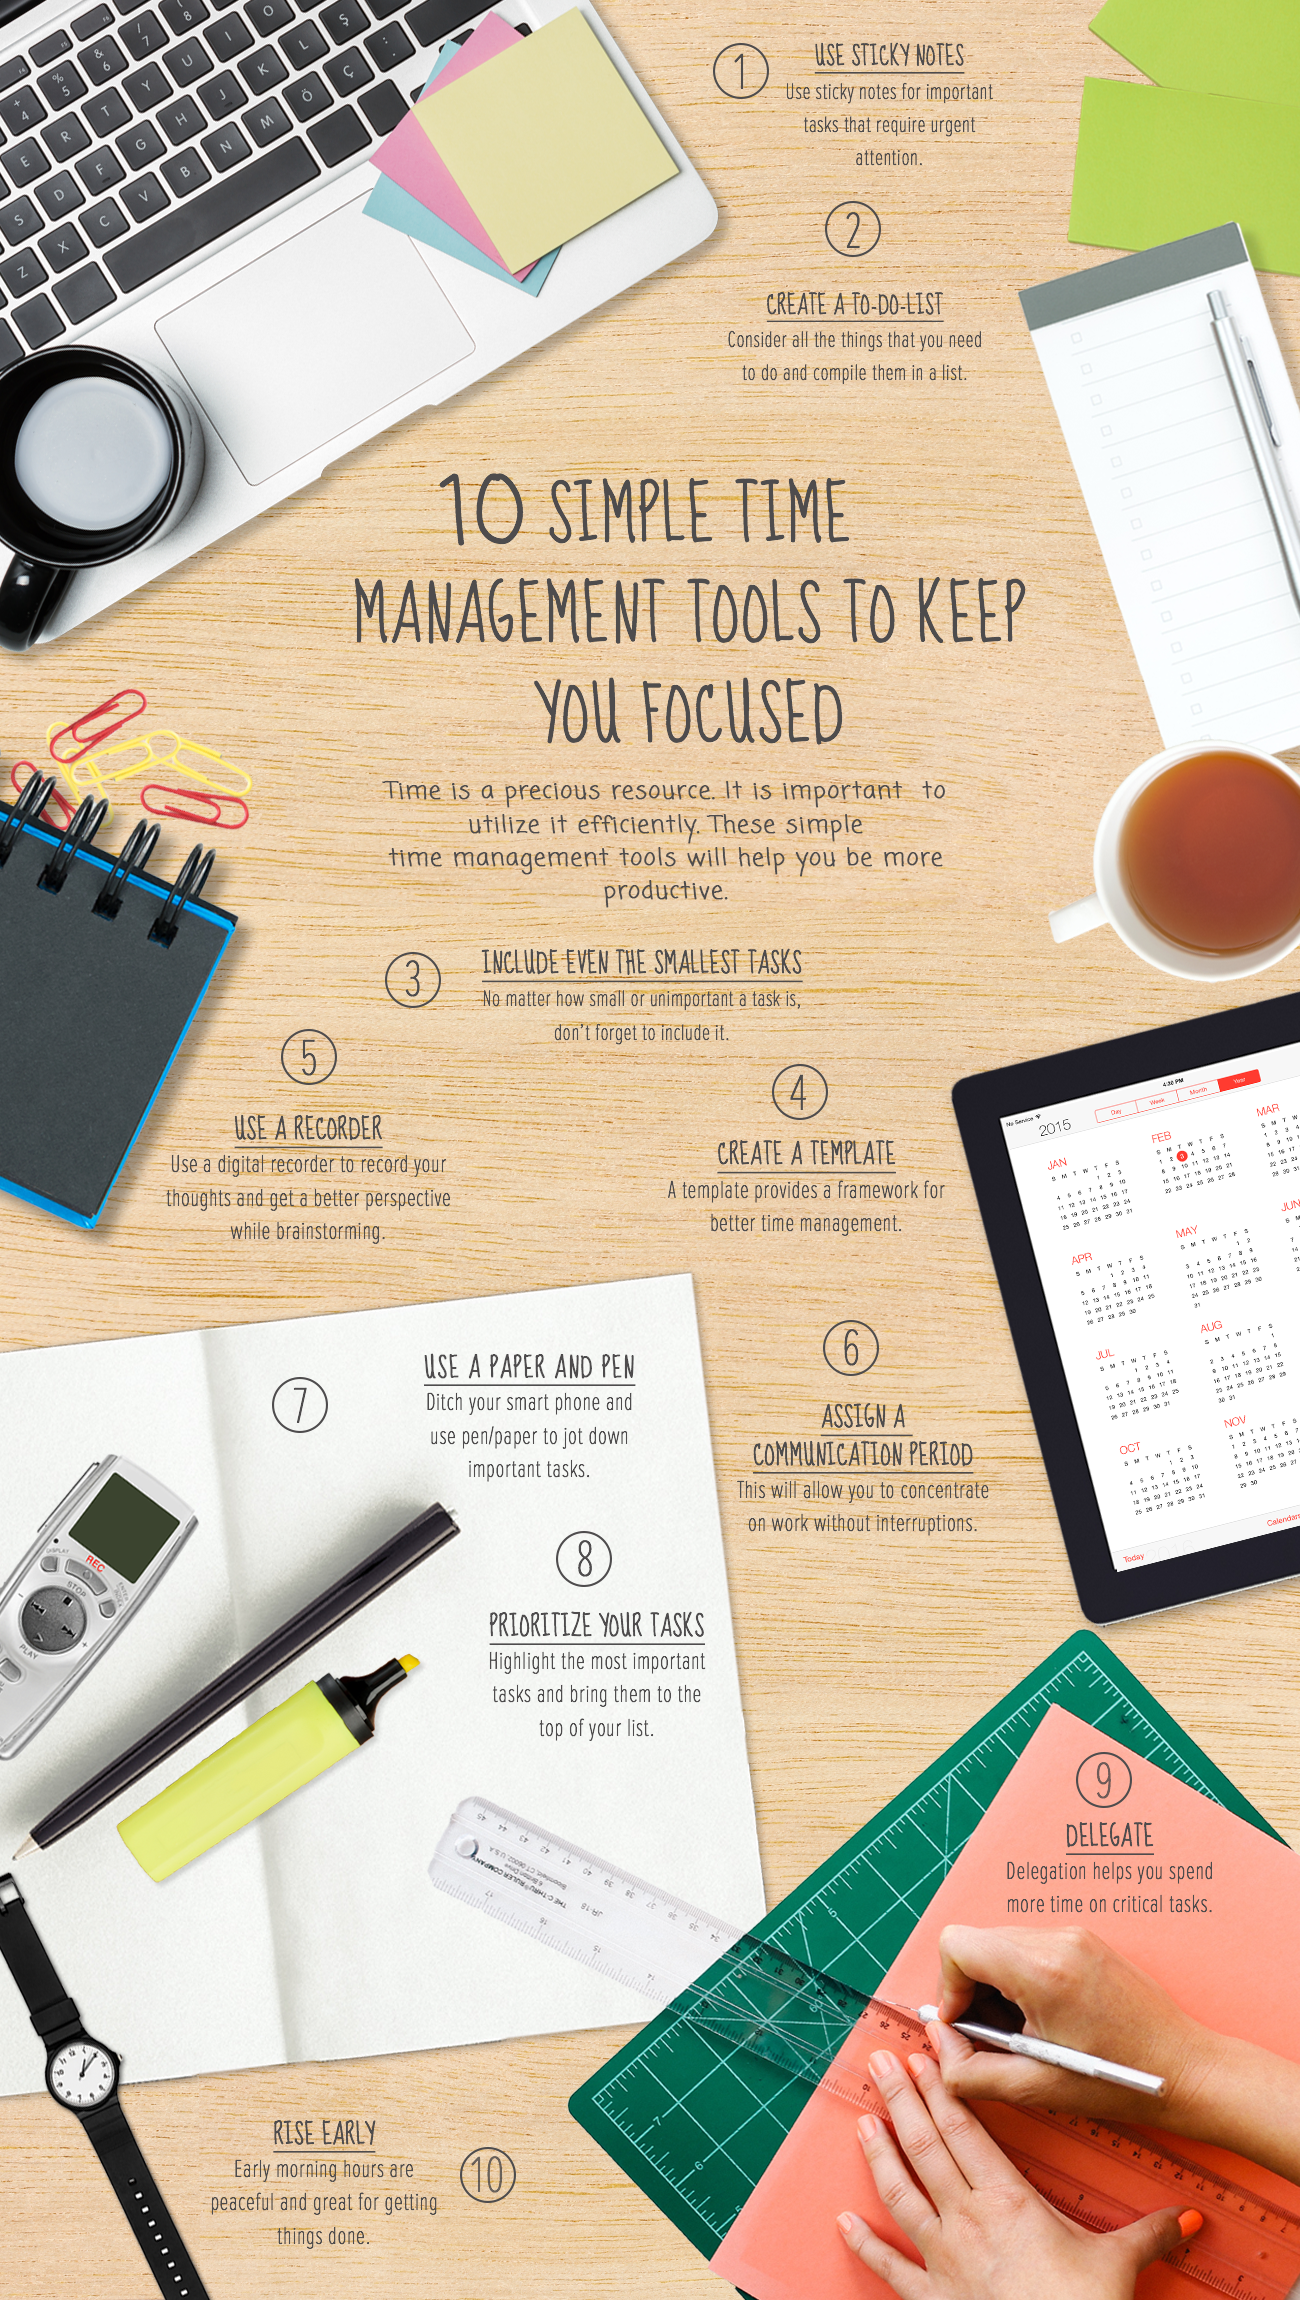 17 Best images about Time Management Tips on Pinterest | How to ...